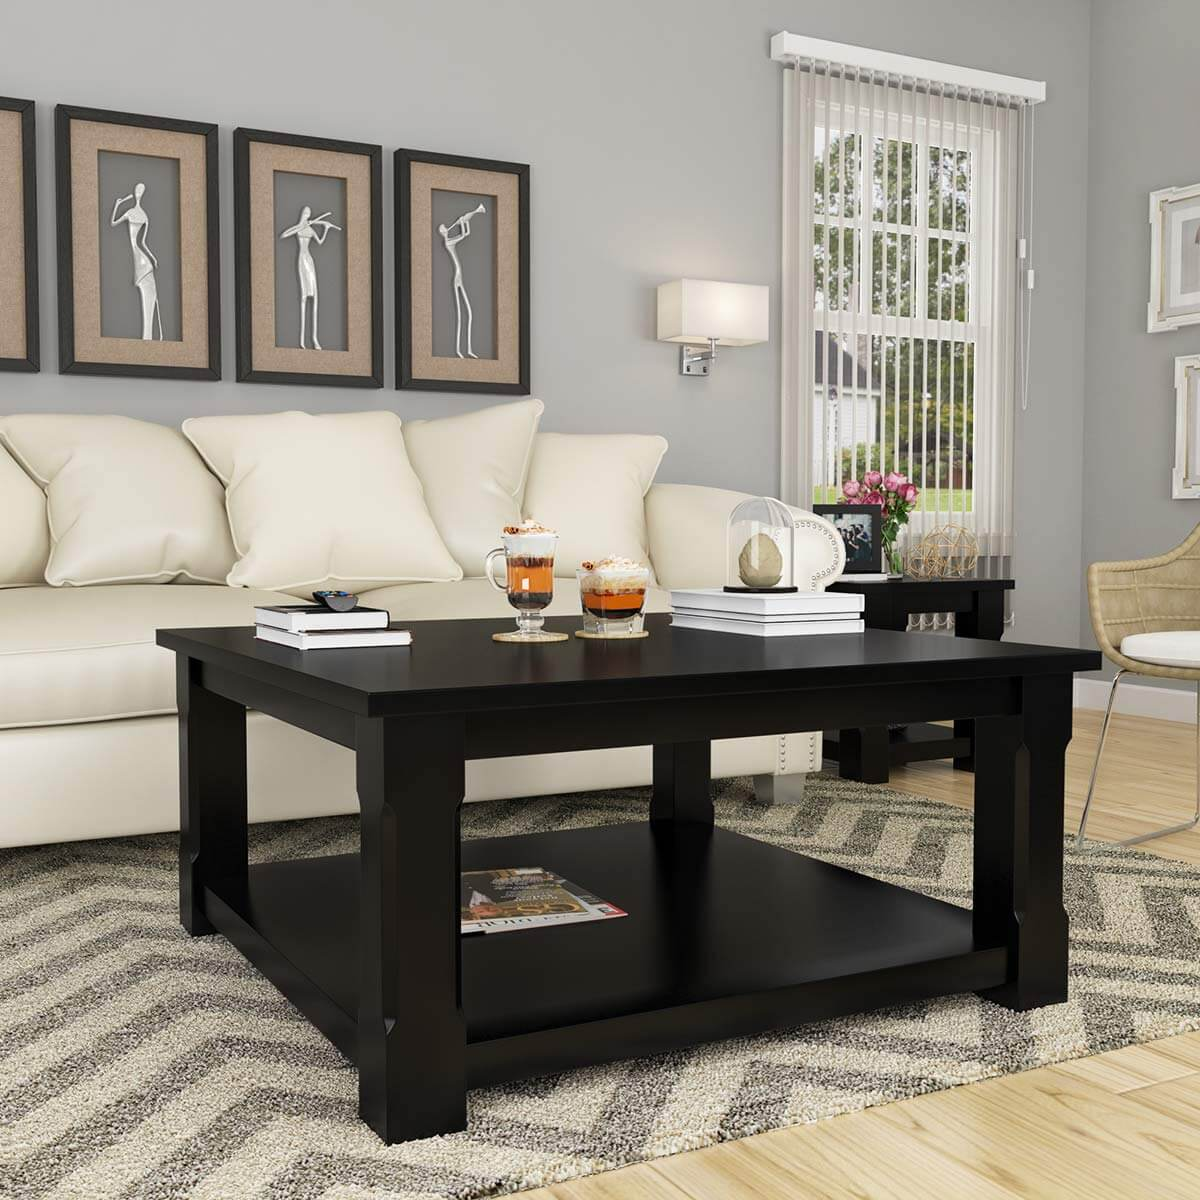 Rustic solid wood black 2 tier square shaker coffee table Rustic black coffee table